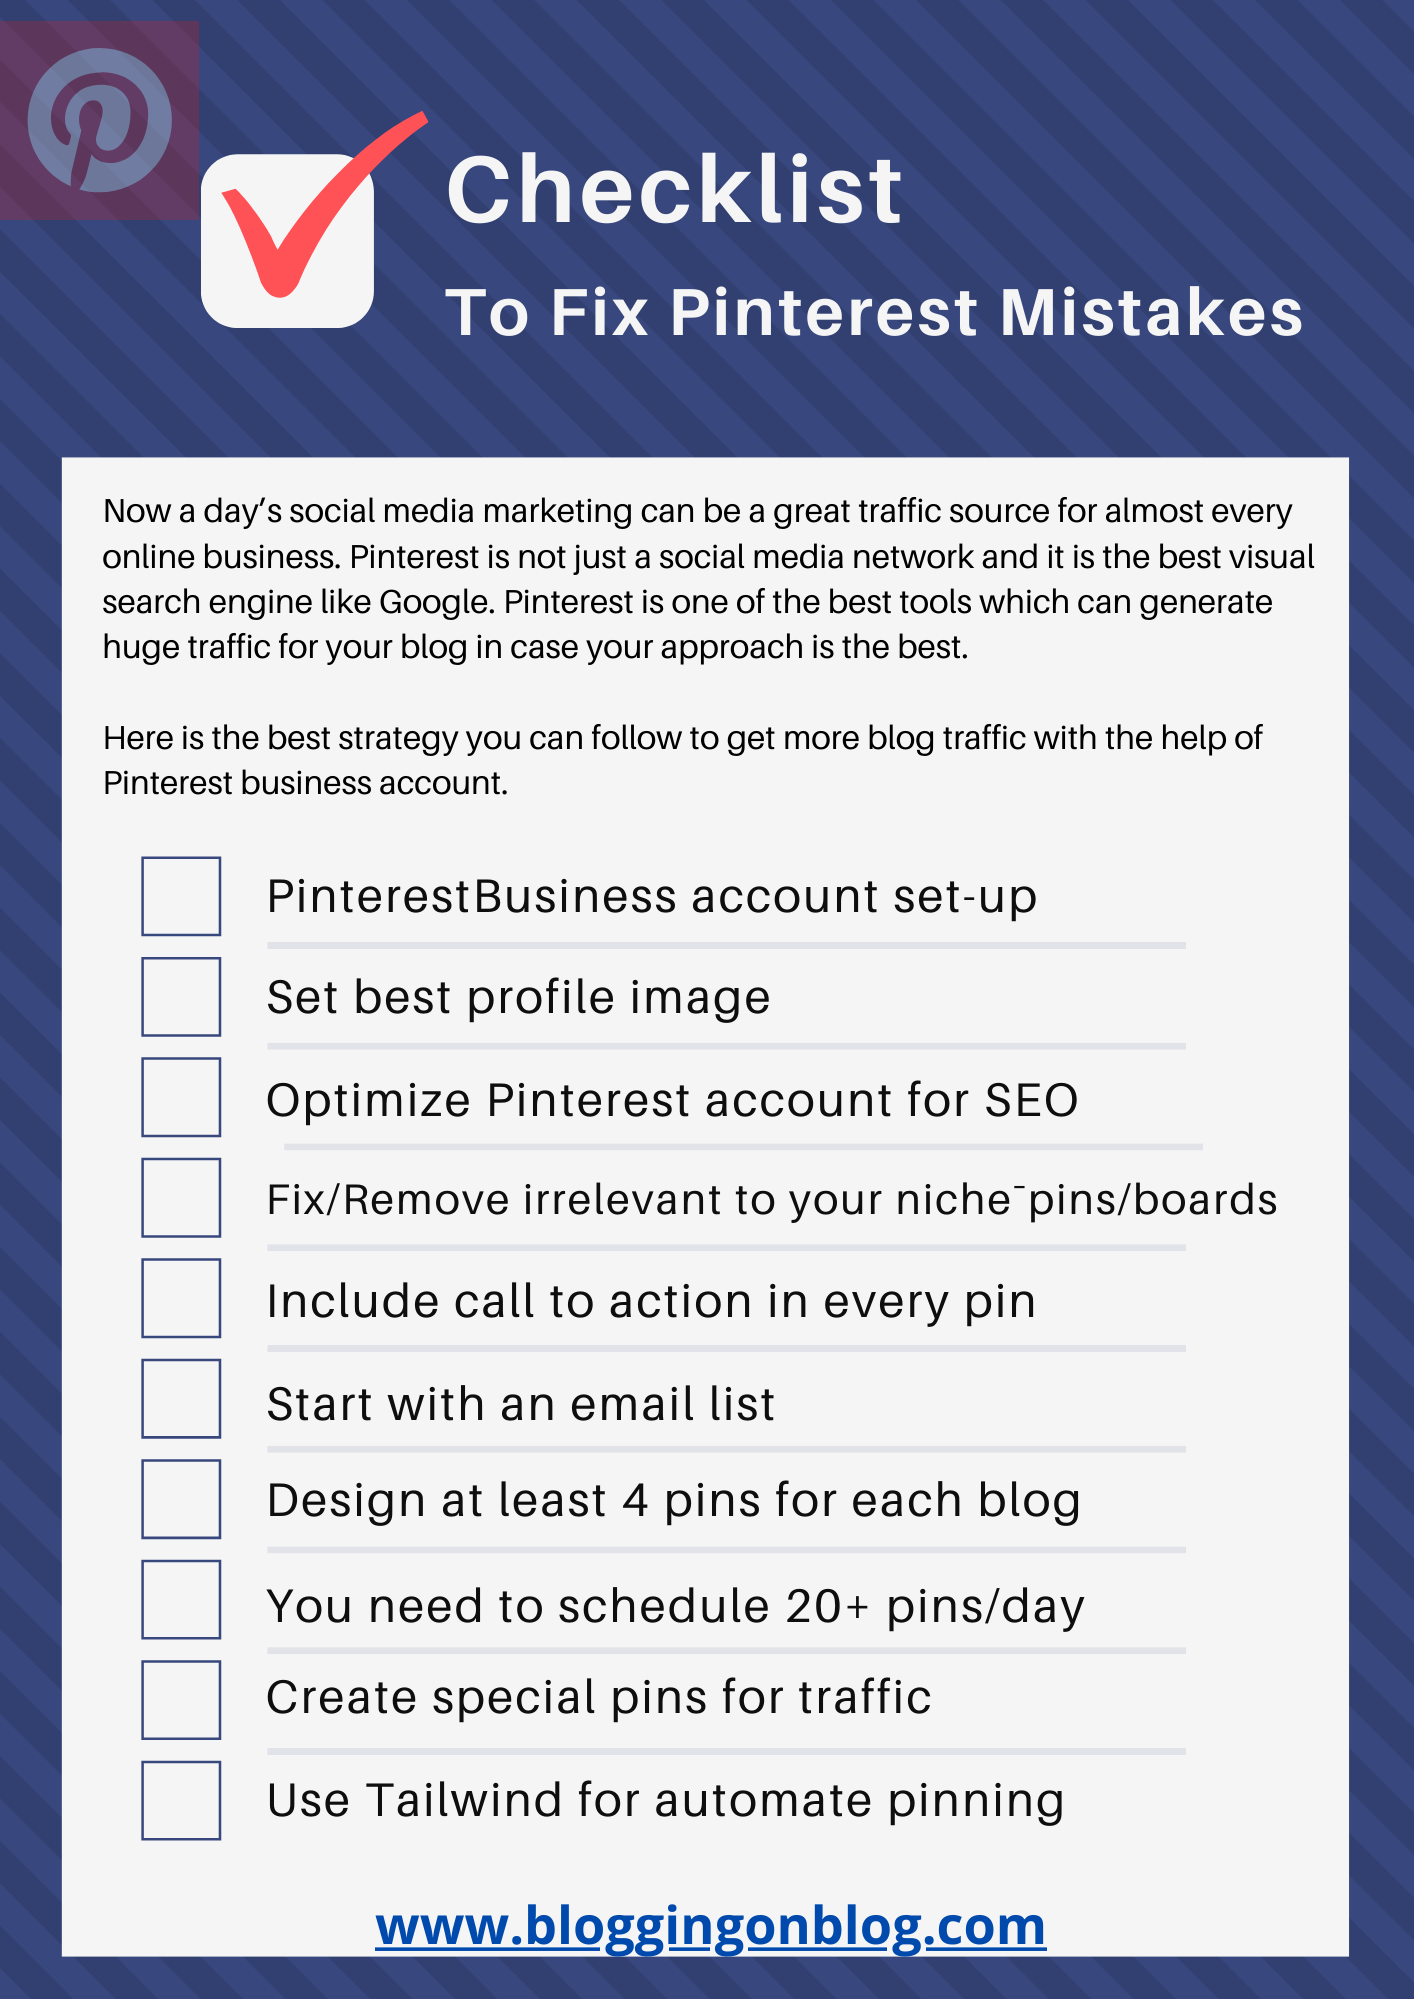 Checklist To Fix Pinterest Mistakes For Huge Blog Traffic